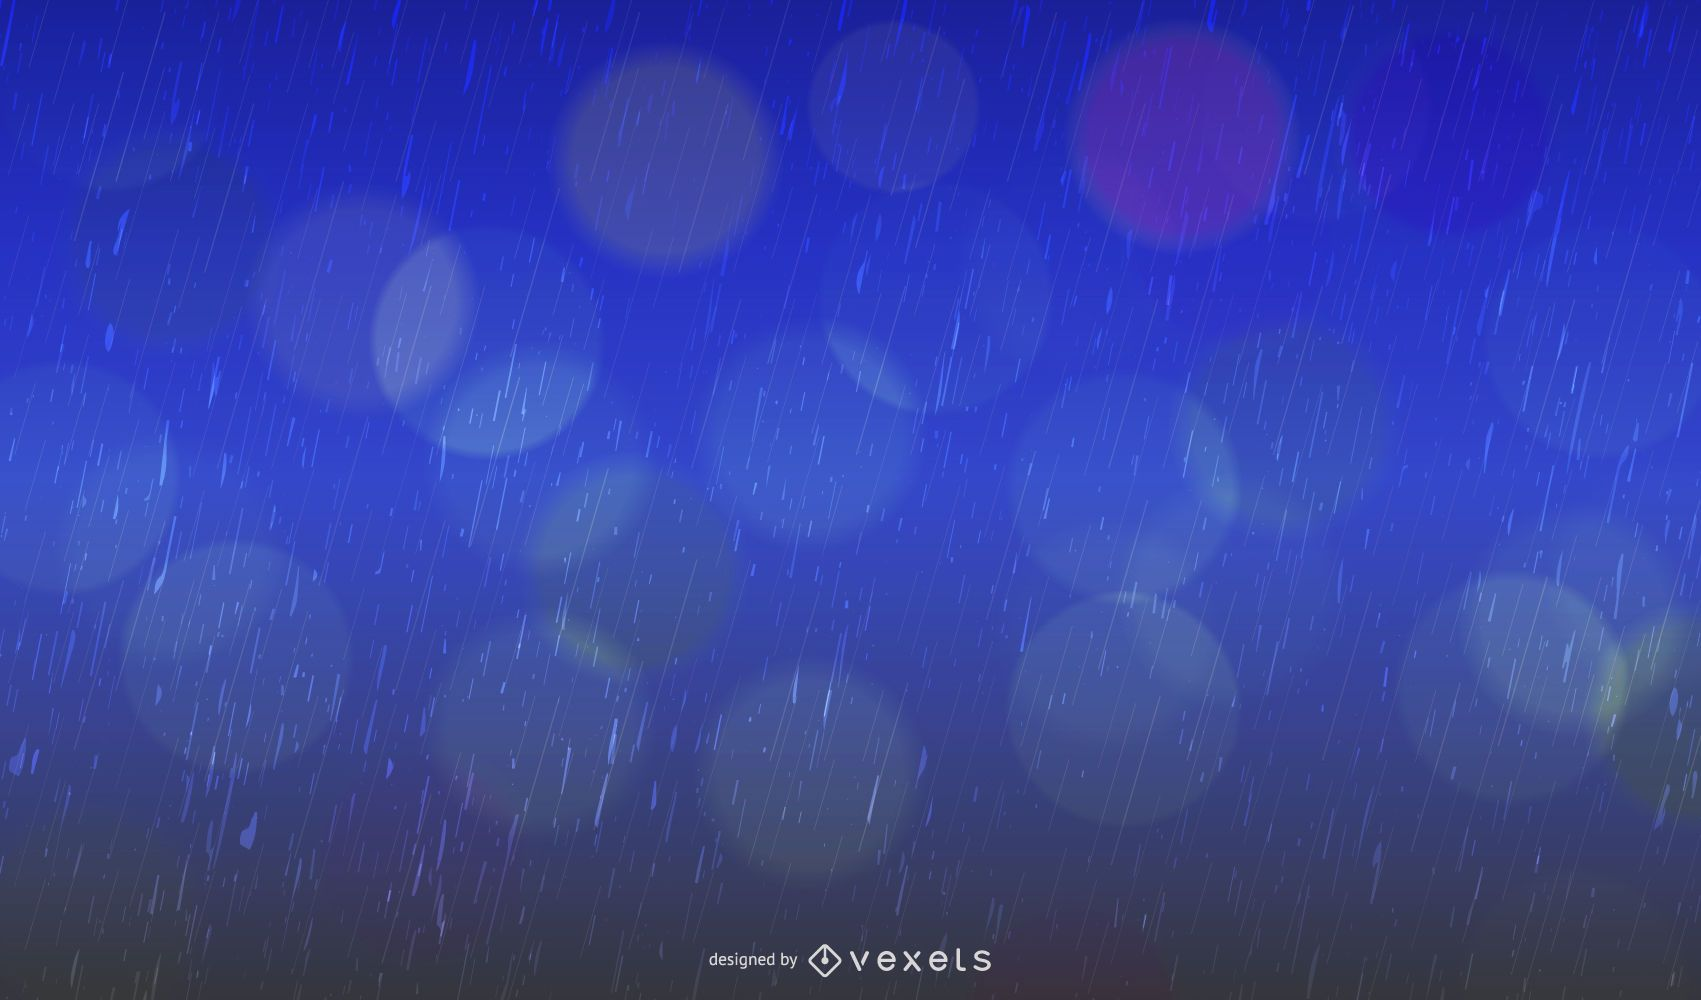 Realistic Raindrop Textured Blue Background Vector Download